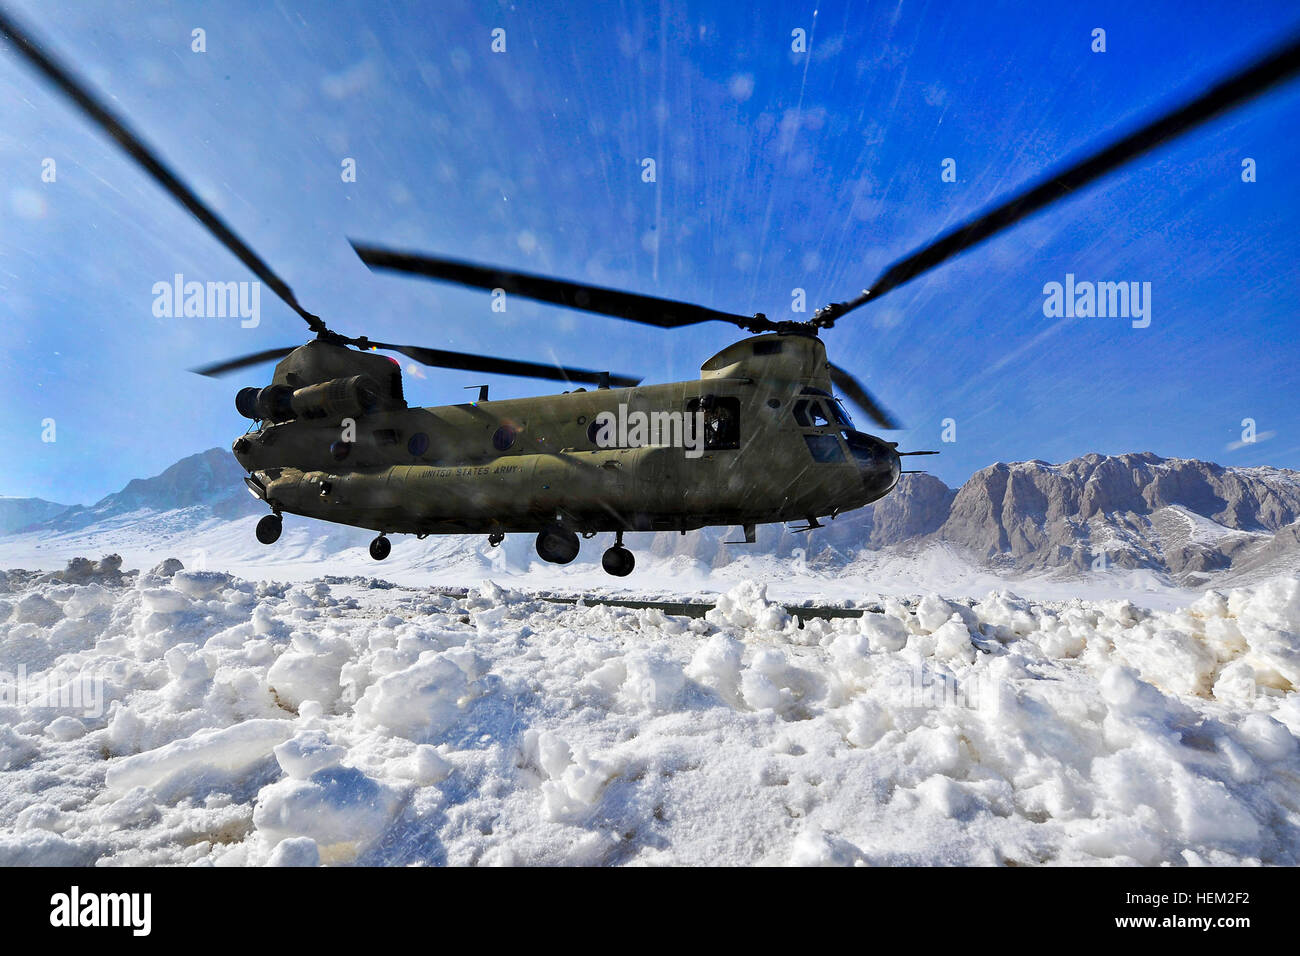 A CH-47 Chinook helicopter raises a white out of blowing snow as it